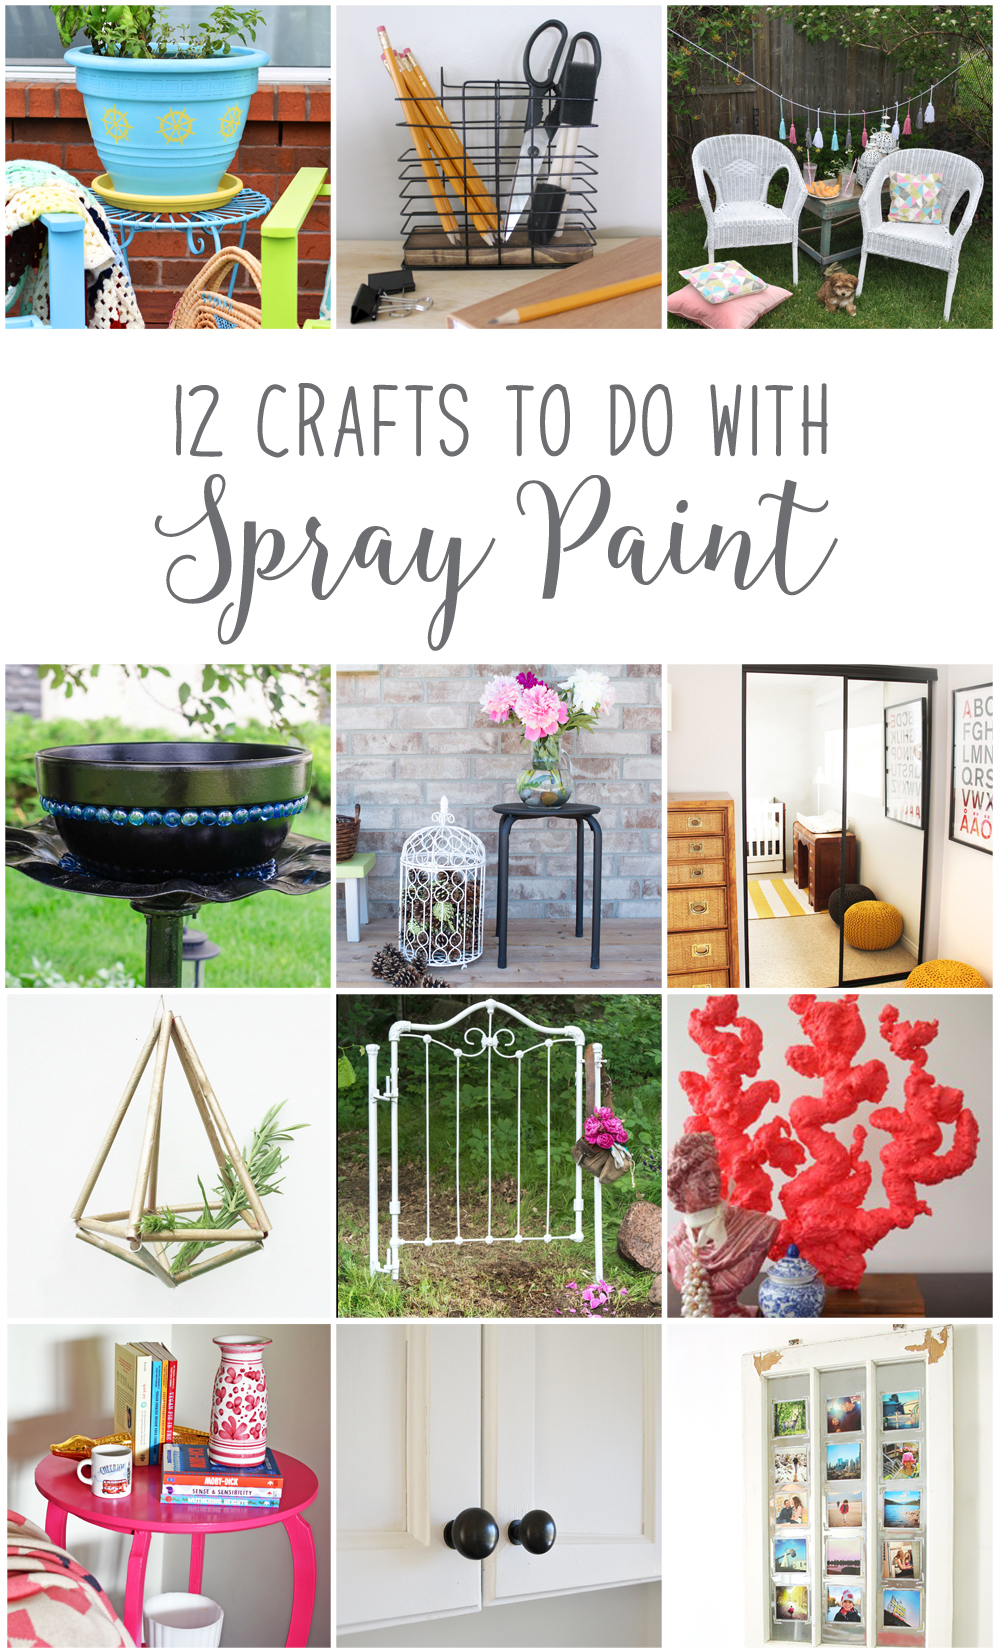 Easy DIY ideas for upcycling old metal outdoor decor and 9 other projects using spray paint. Love the pine-cone filled birdcage idea!